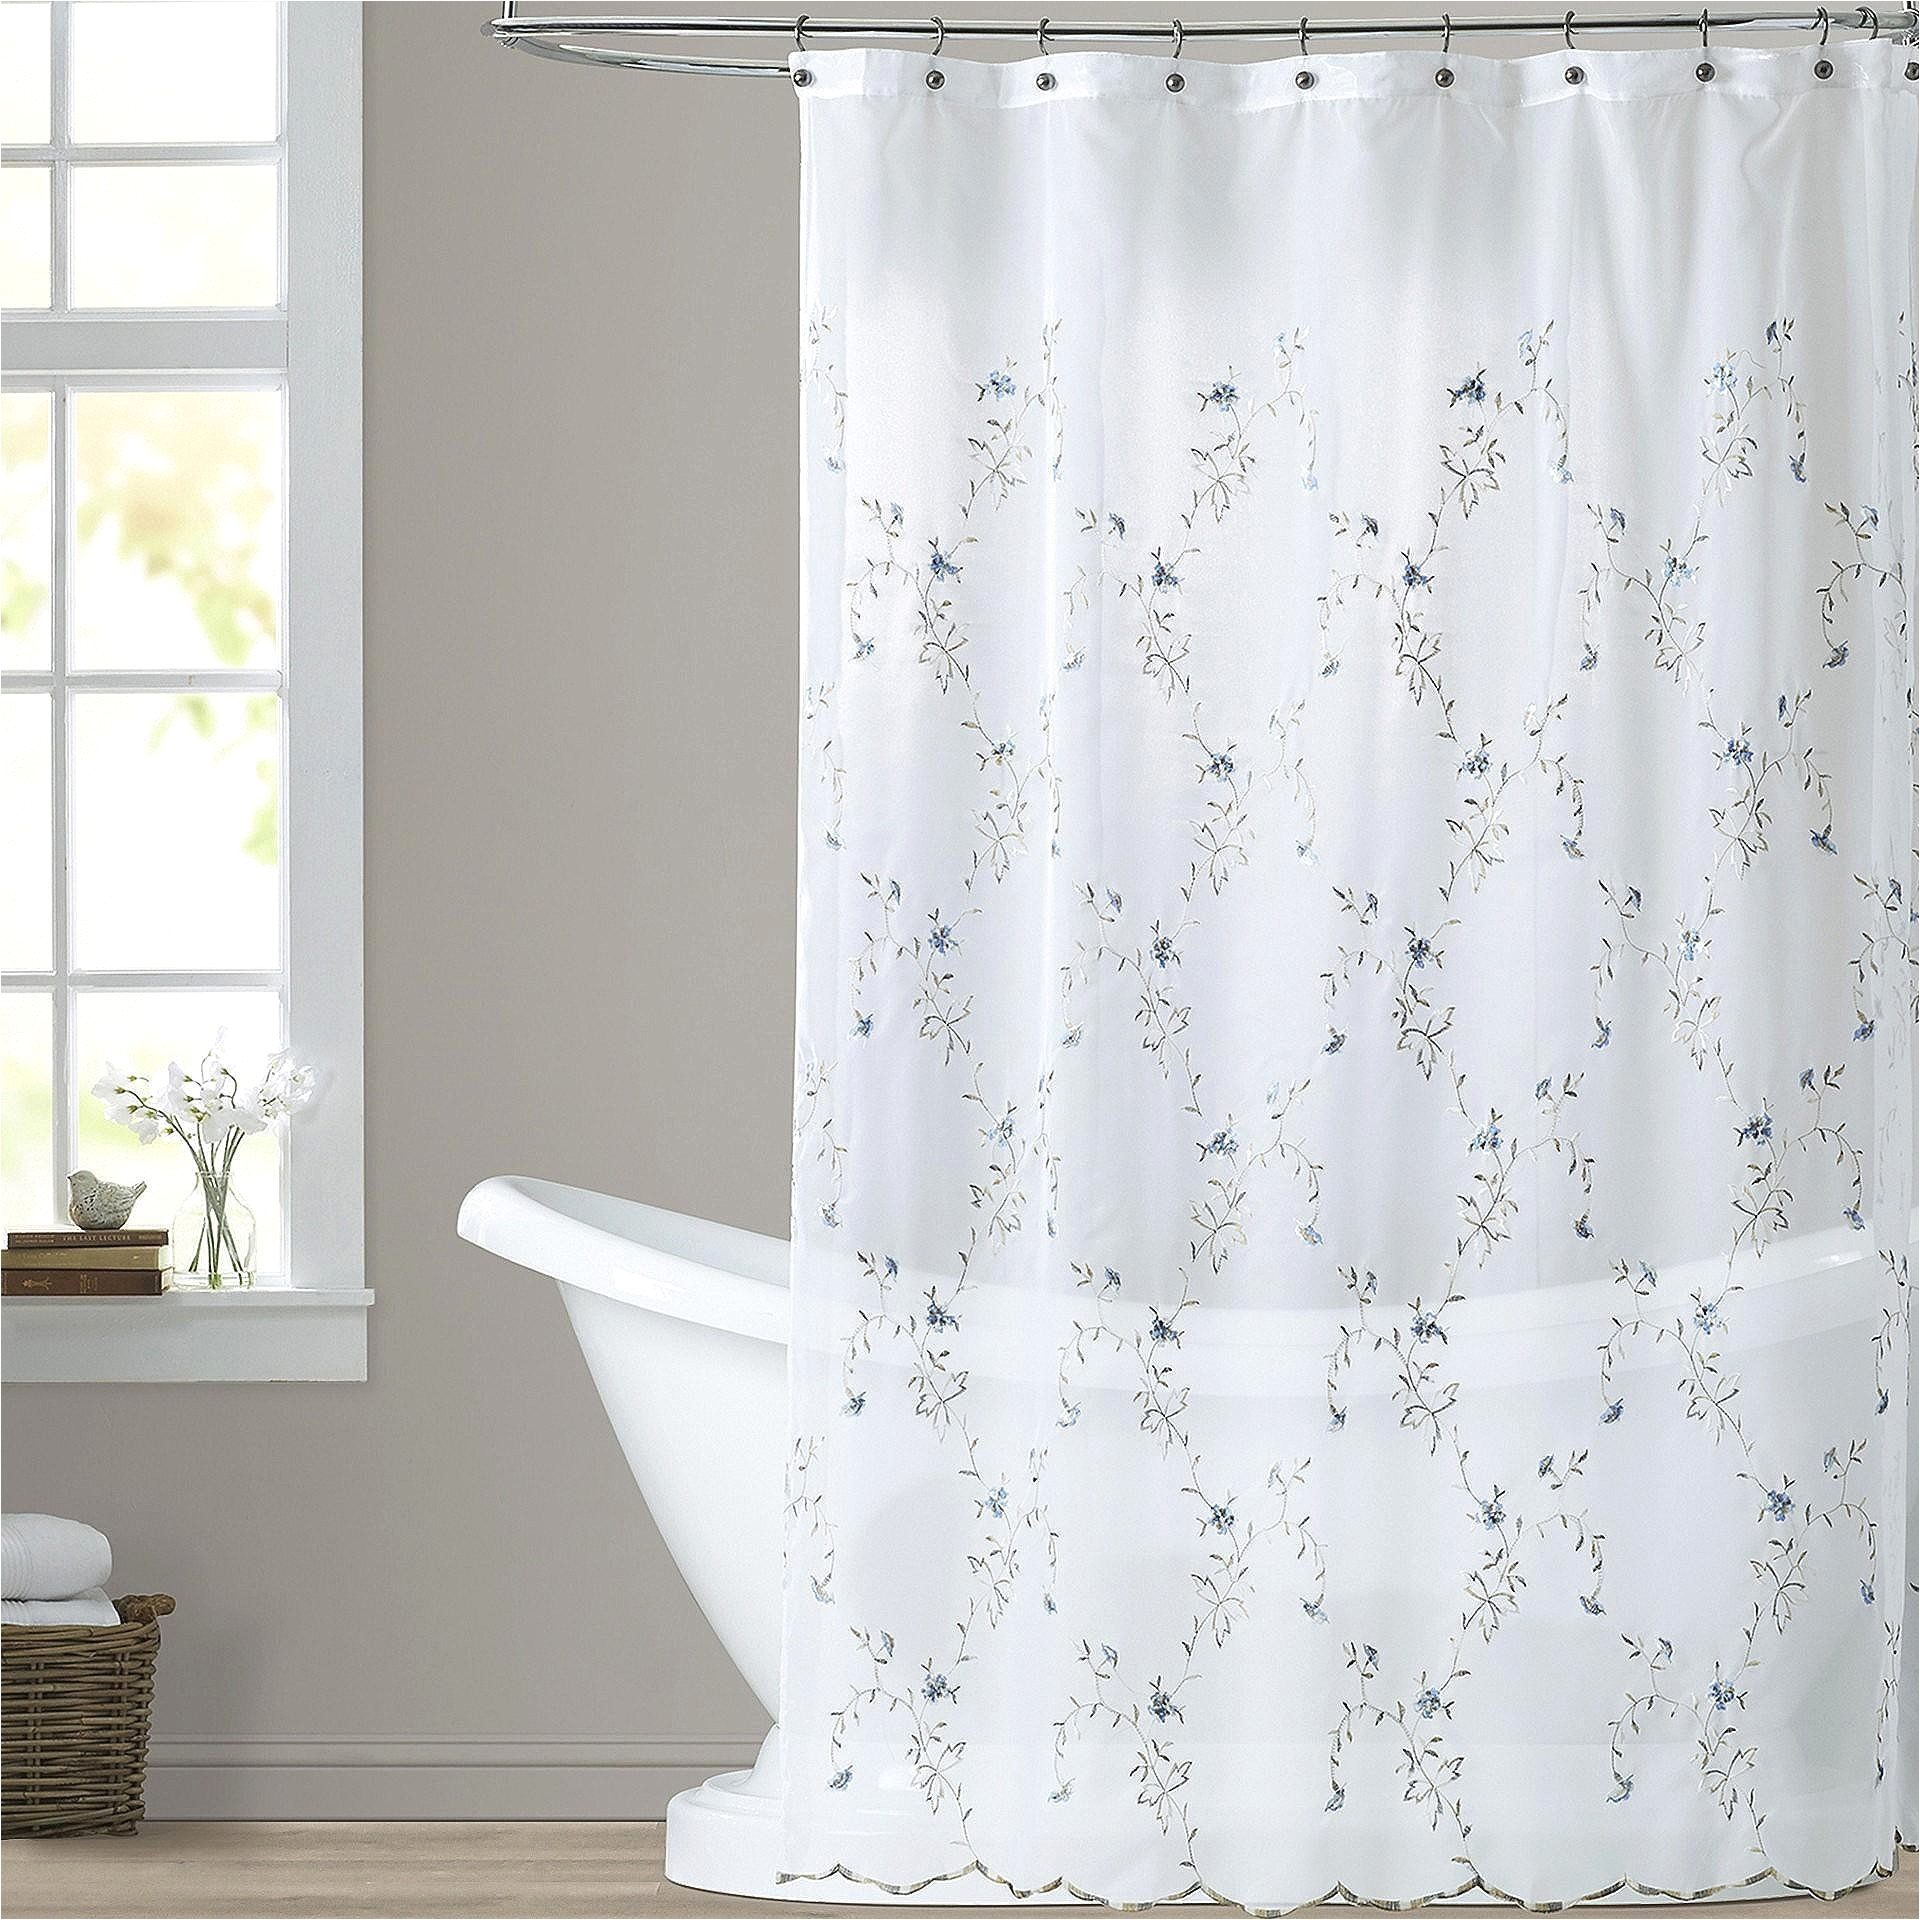 Shower Curtain for Transfer Chair 21 Coolest Amazon Shower Curtain Rod Shower Curtains Ideas Design